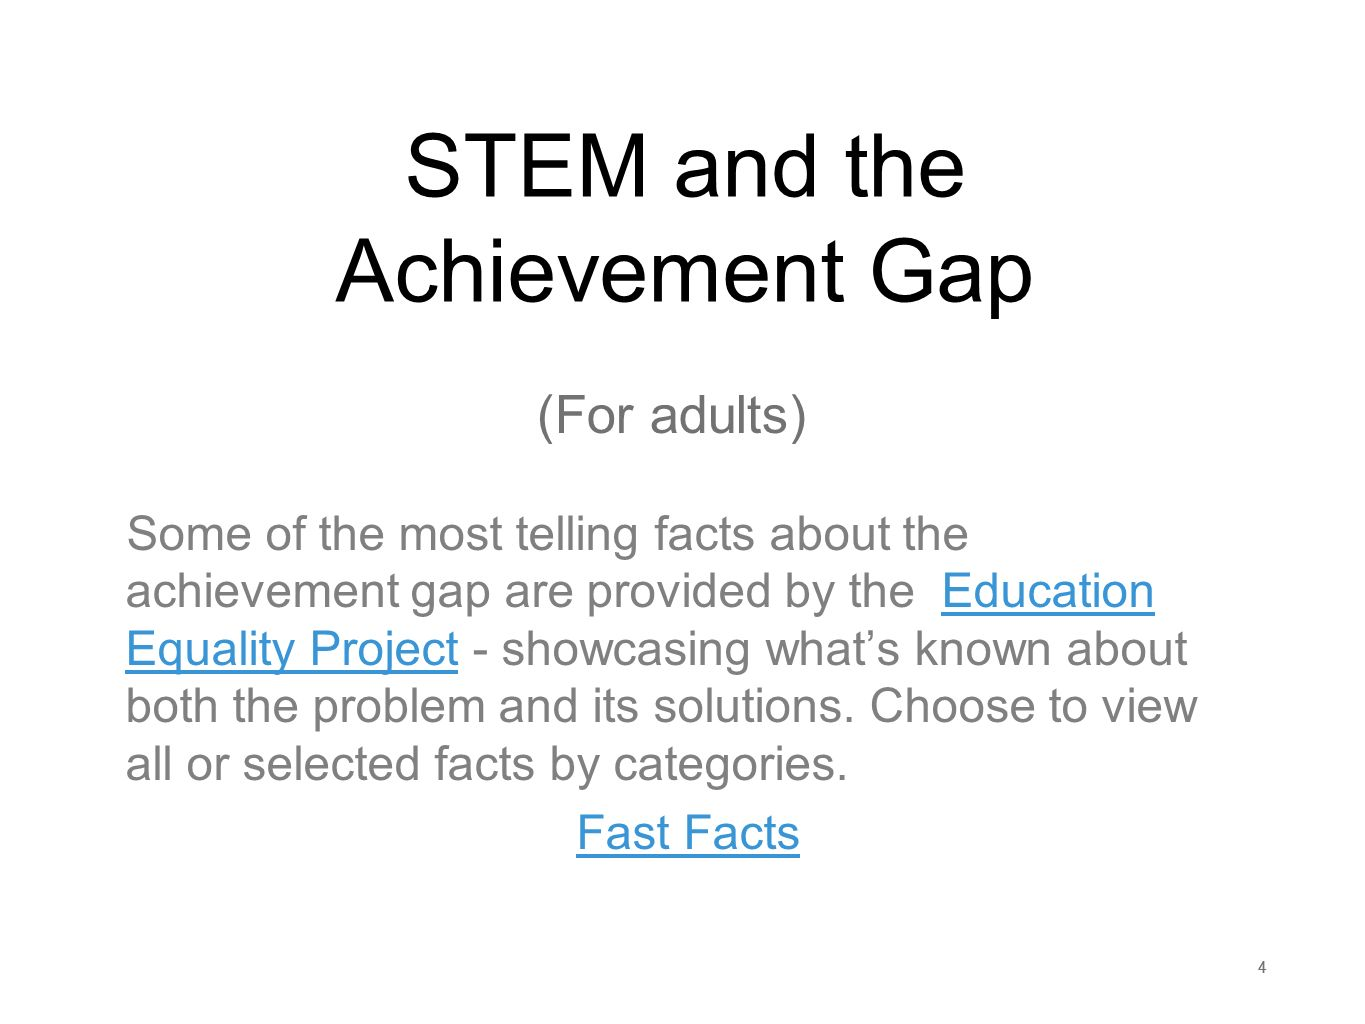 444 STEM and the Achievement Gap Some of the most telling facts about the achievement gap are provided by the Education Equality Project - showcasing